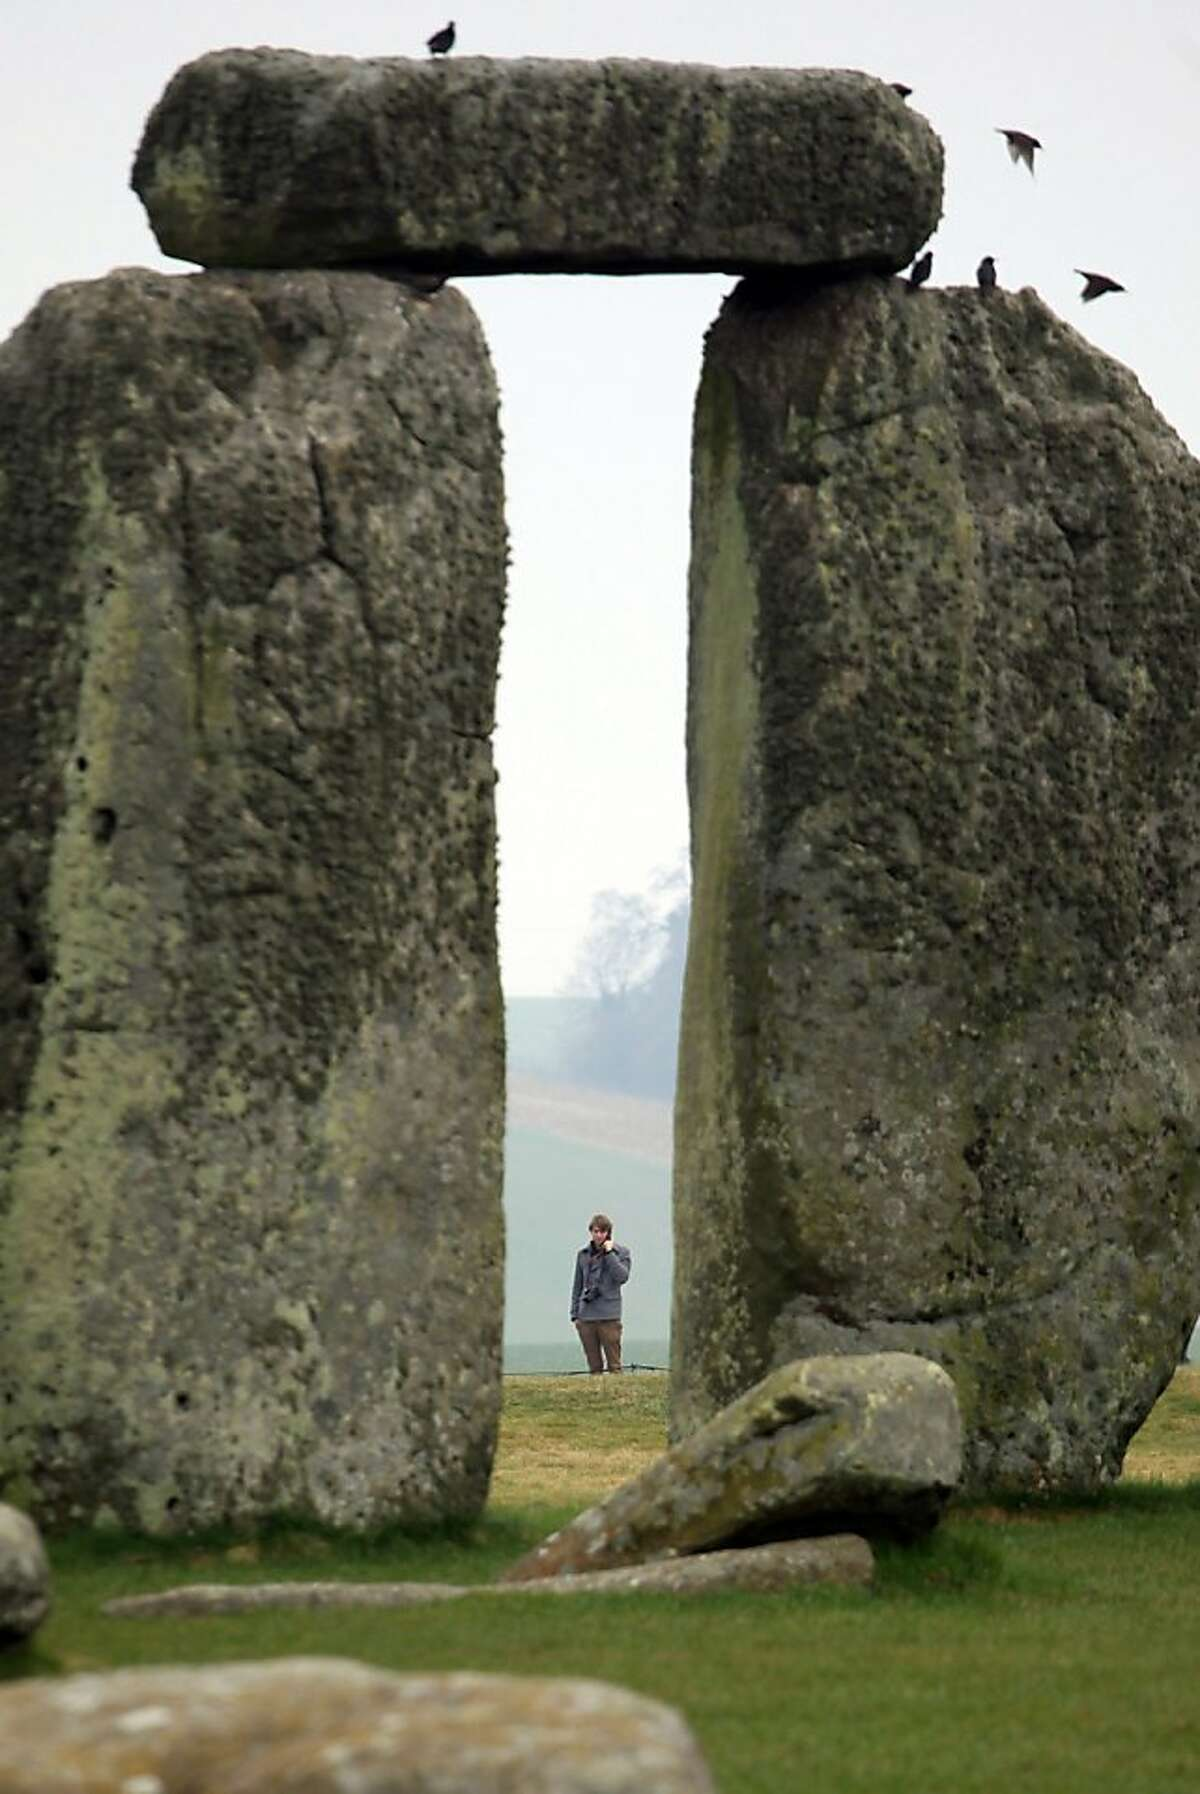 Visitors and tourists walk around the ancient monument at Stonehenge on March 2 2012 in Wiltshire, England. (Photo by Matt Cardy/Getty Images)